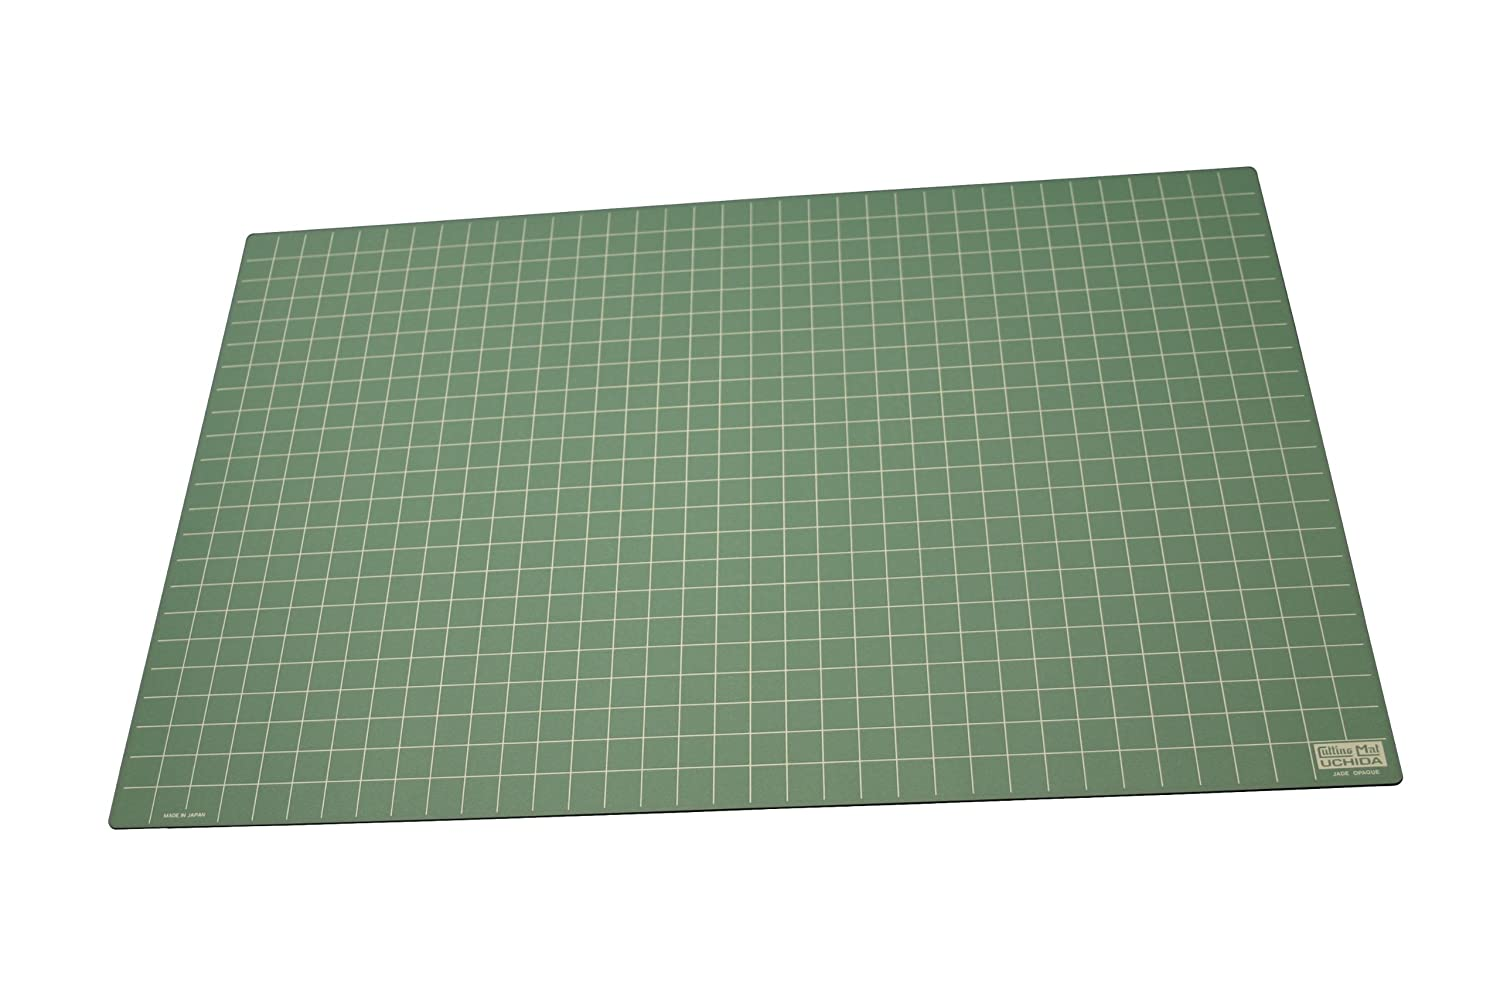 Uchida GL Marvy Opaque Cutting Mat, Jade Green, 24-Inch by 36-Inch Uchida of America Corp